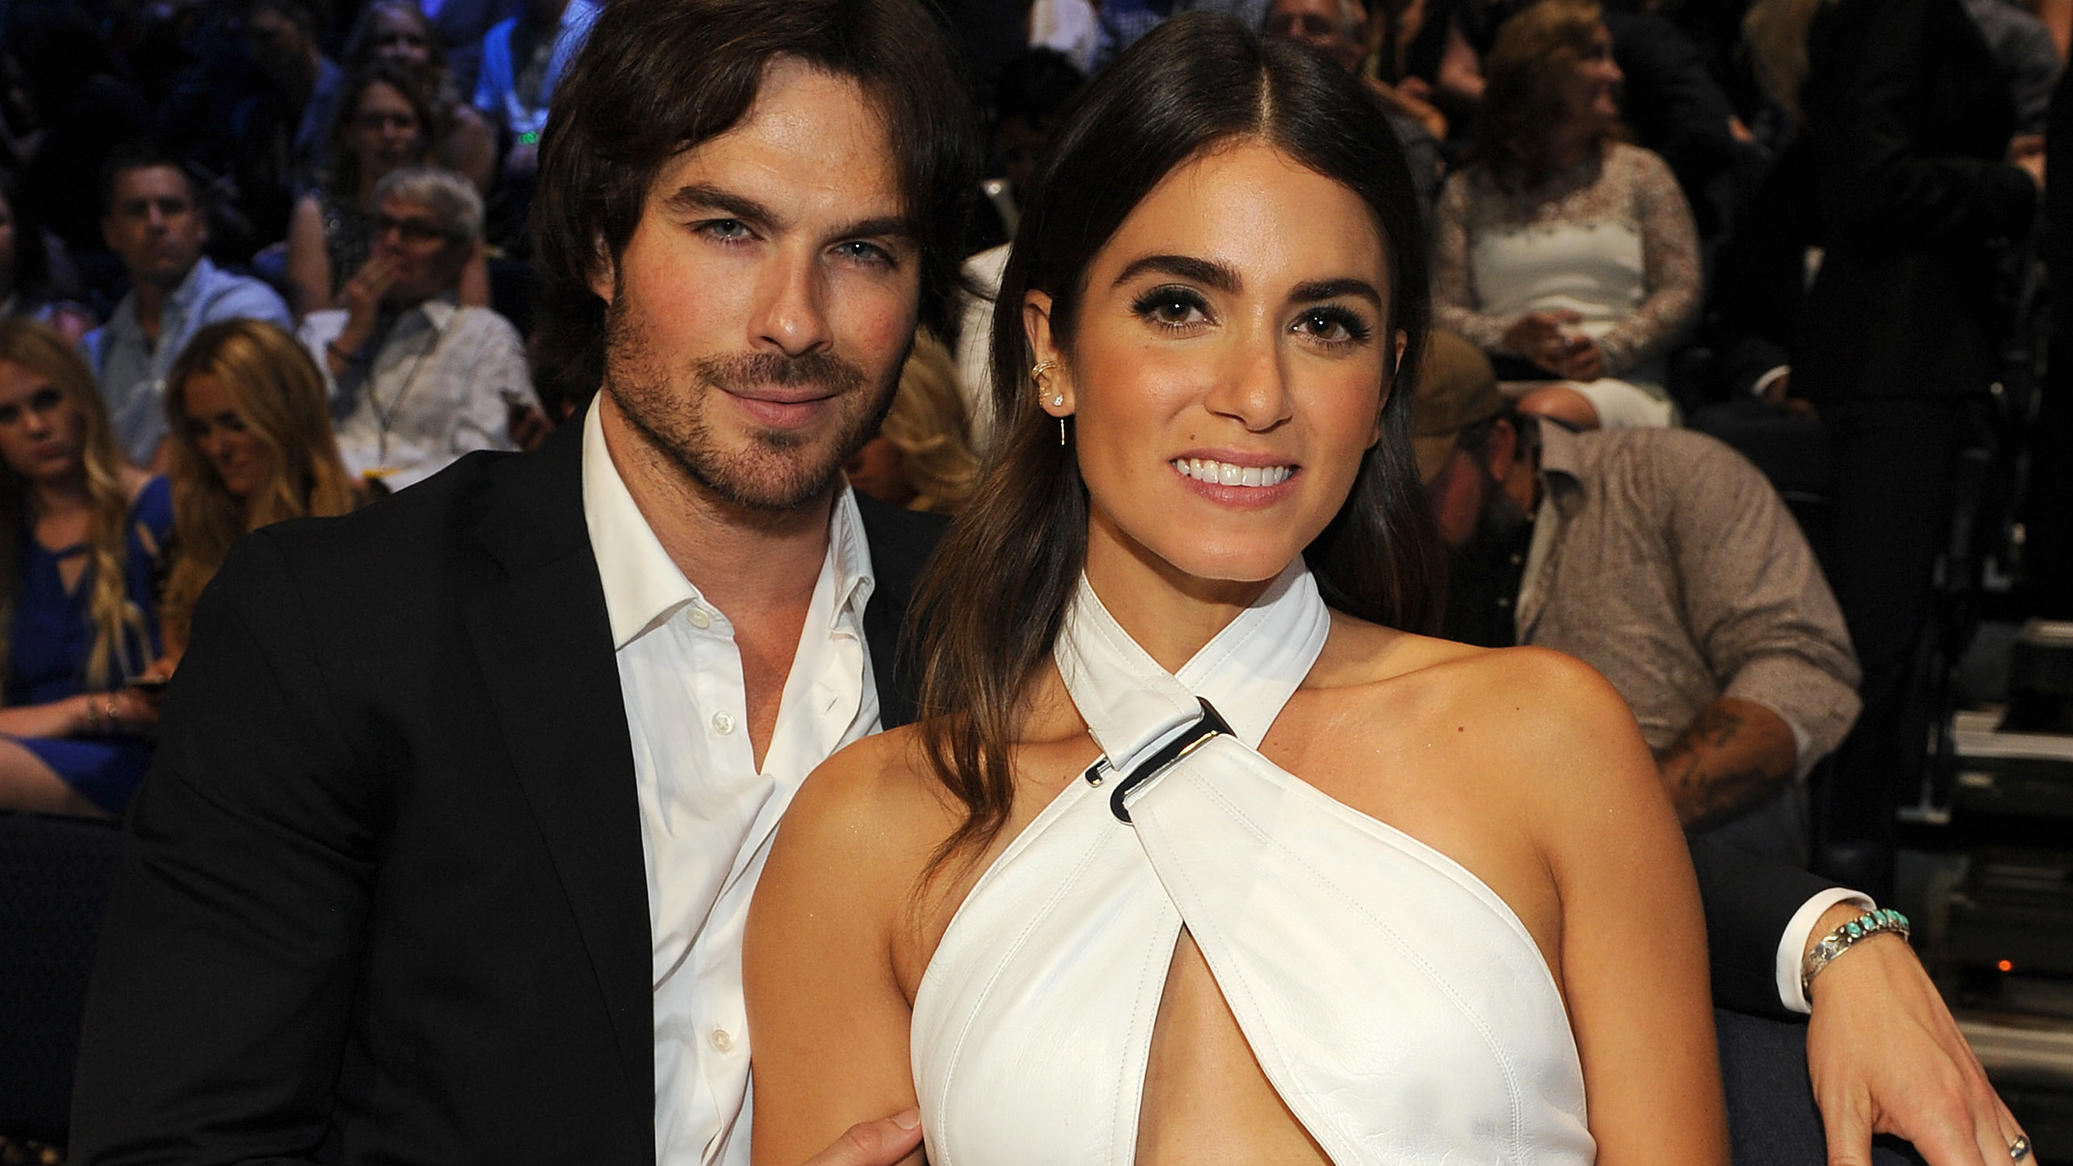 NASHVILLE, TN - JUNE 10: Ian Somerhalder, Nikki Reed at the 2015 CMT Music Awards at the Bridgestone Arena on June 10, 2015 in Nashville, Tennessee. (Photo by Frank Micelotta/PictureGroup)